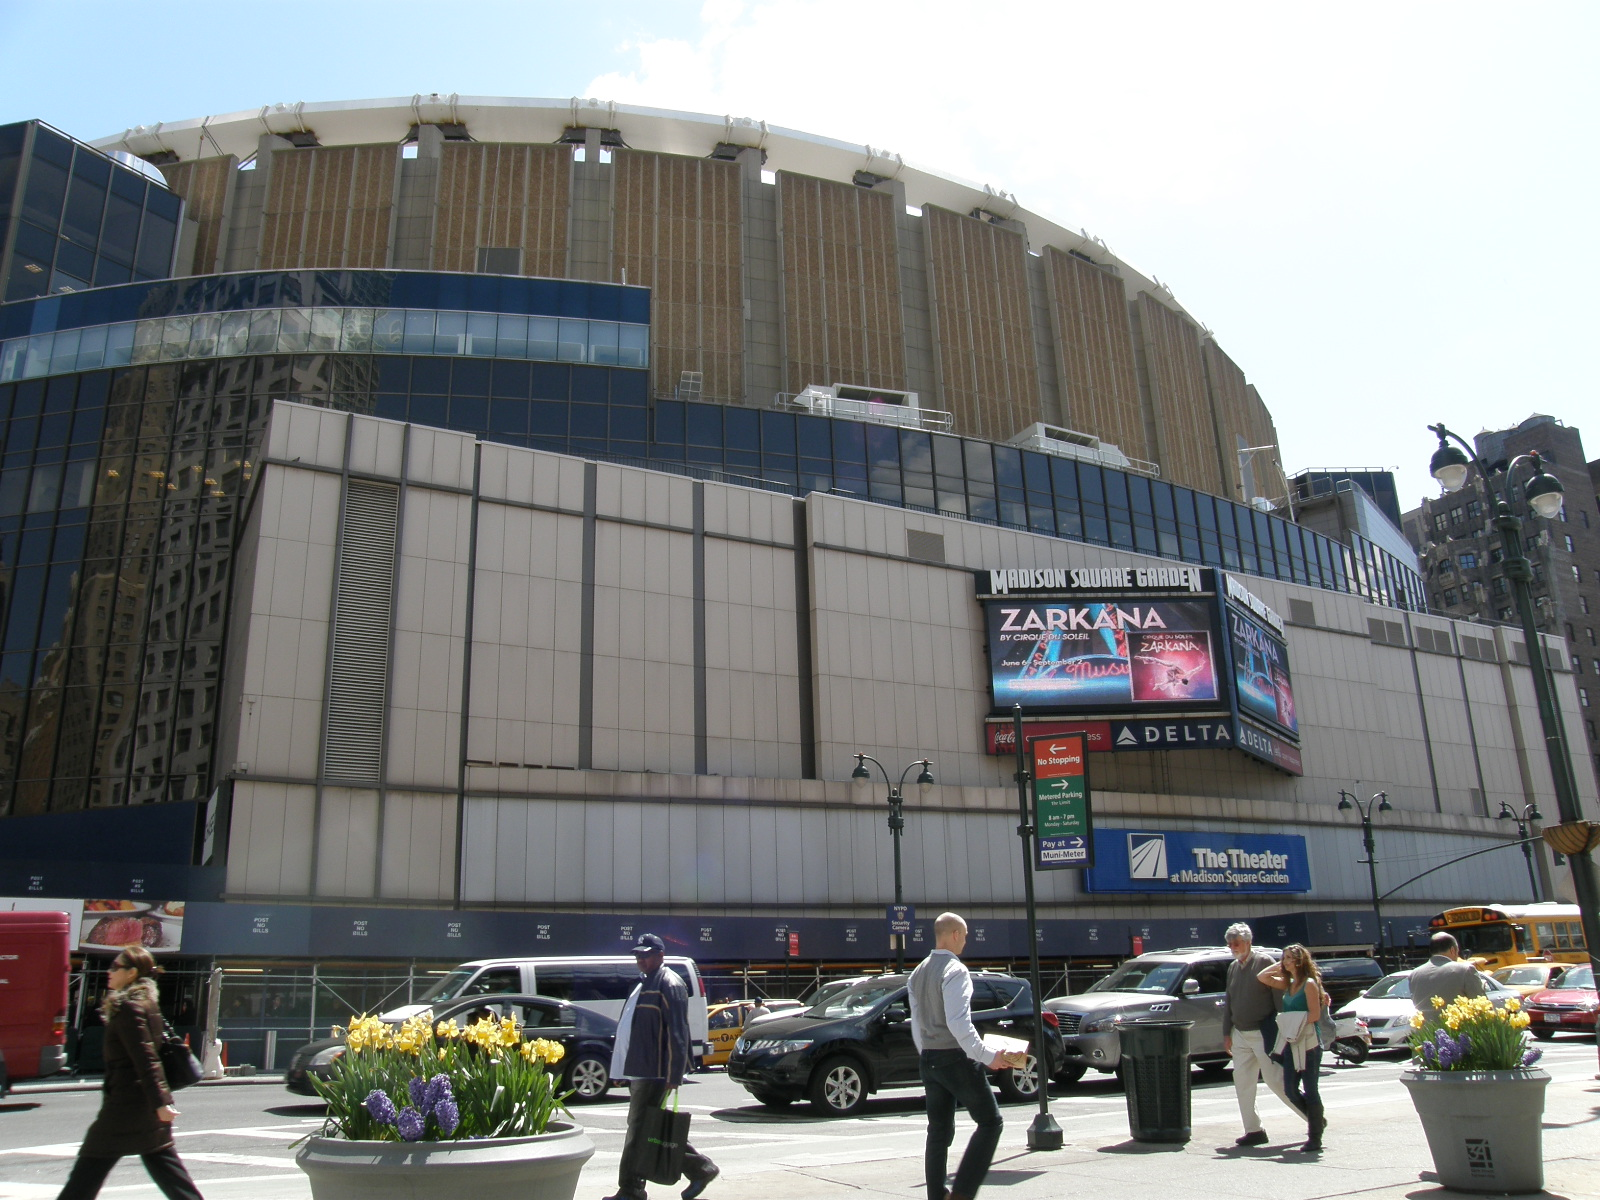 Madison Square Garden: Stadium In New York City